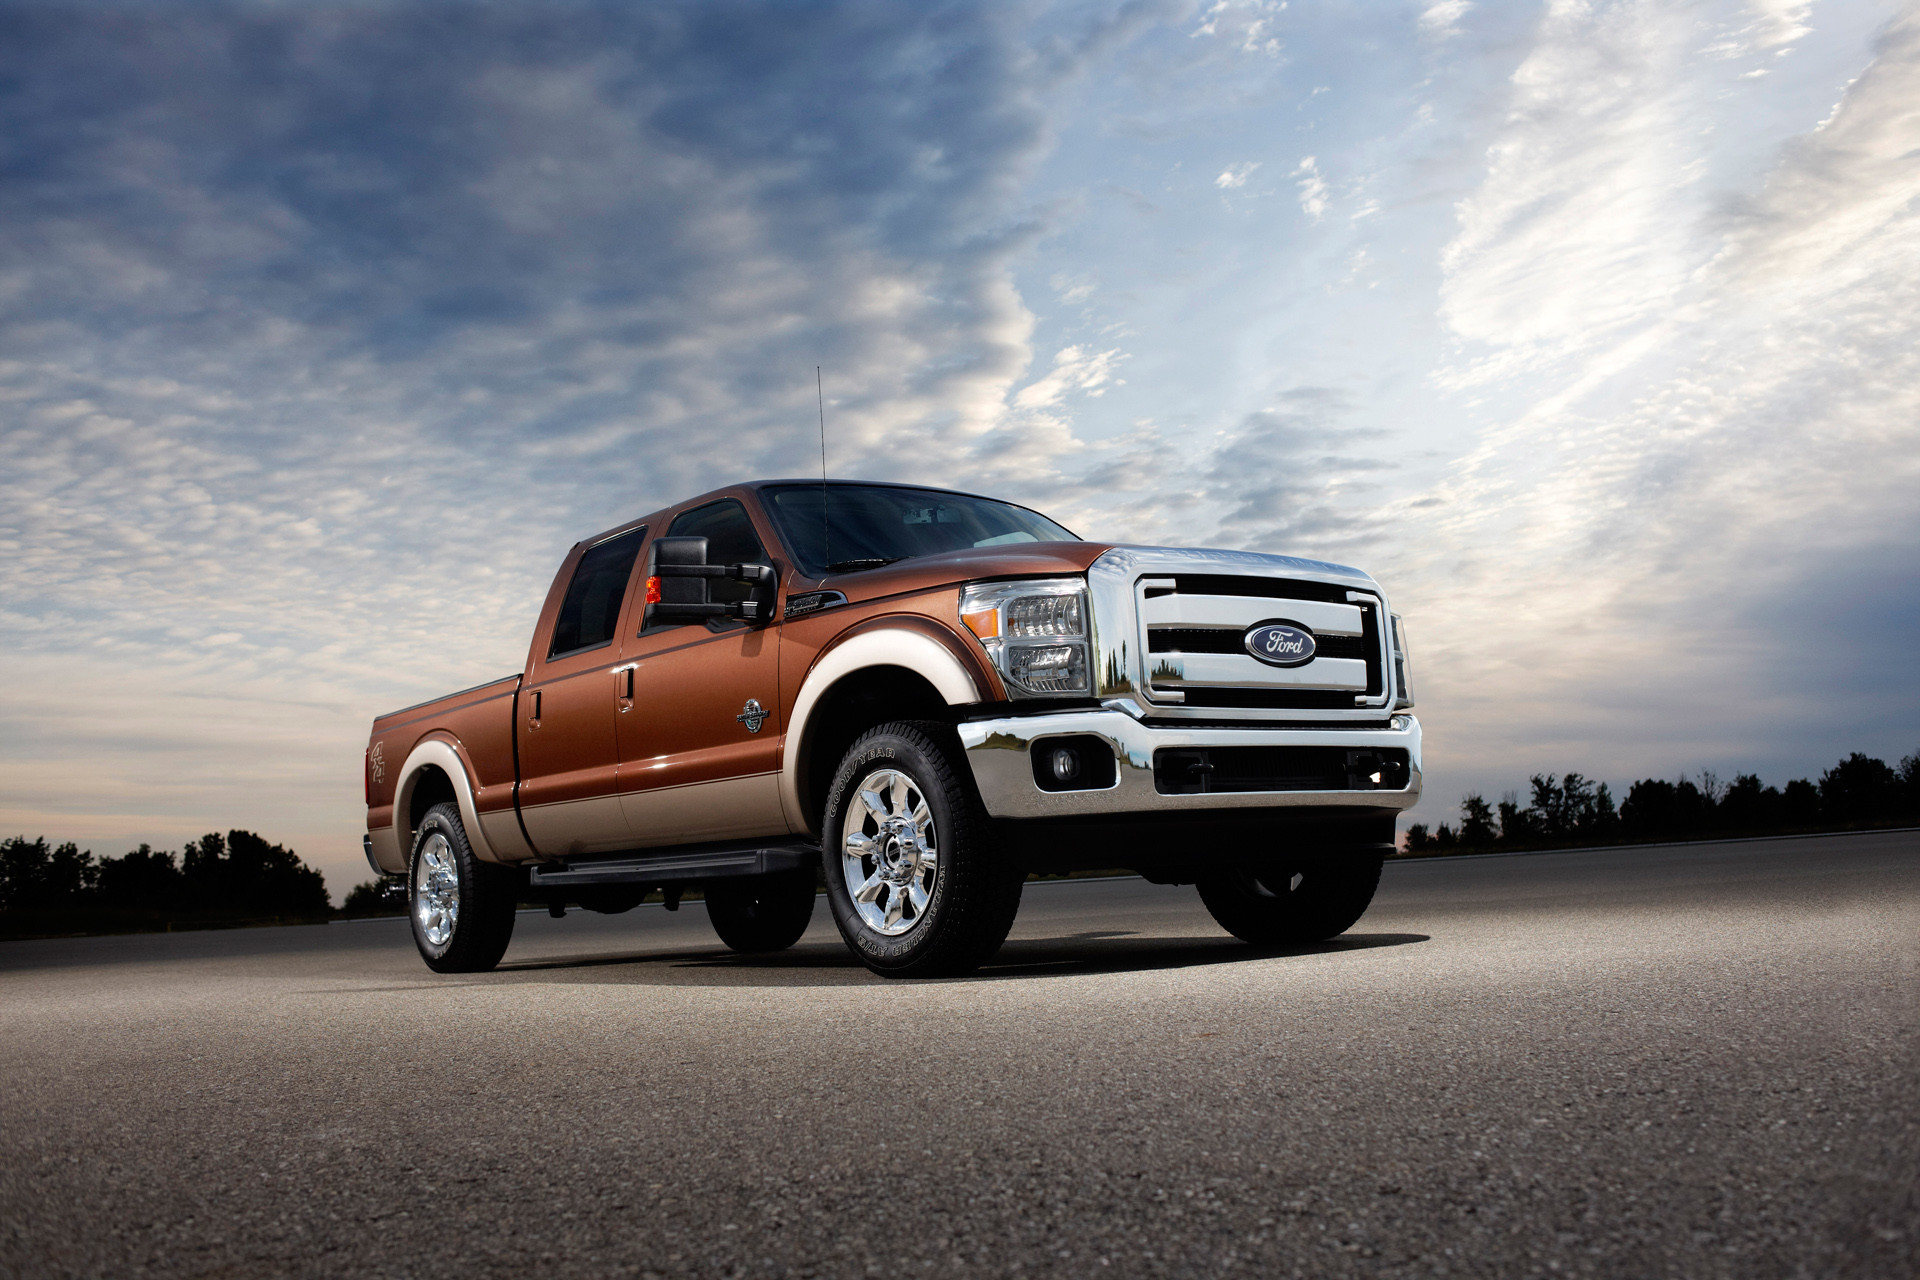 Ford F-350 photo 68149